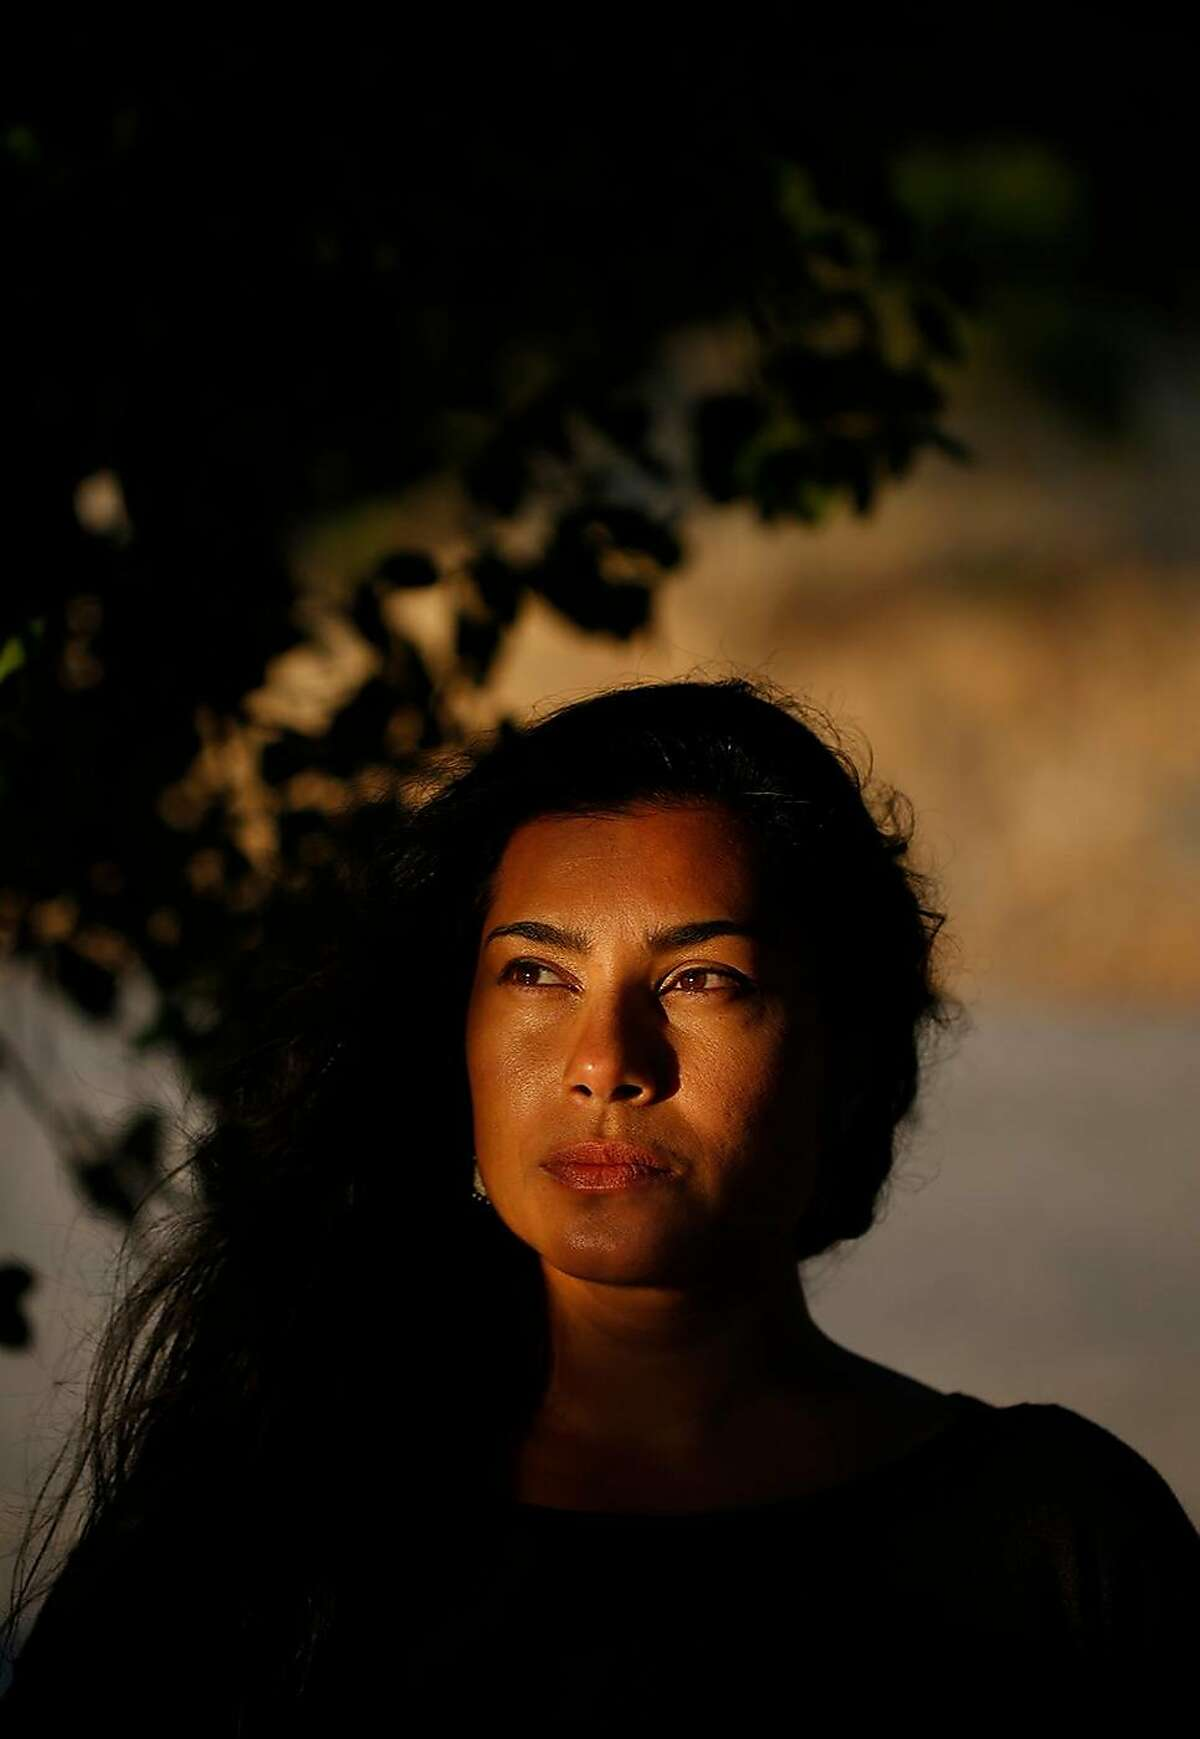 Sara Tasneem poses for a portrait at her home in El Sobrante, Calif. Tasneem was legally married off by her father at the age of 15 to a much older man in Nevada. Tasneem has withdrawn her support from SB273,